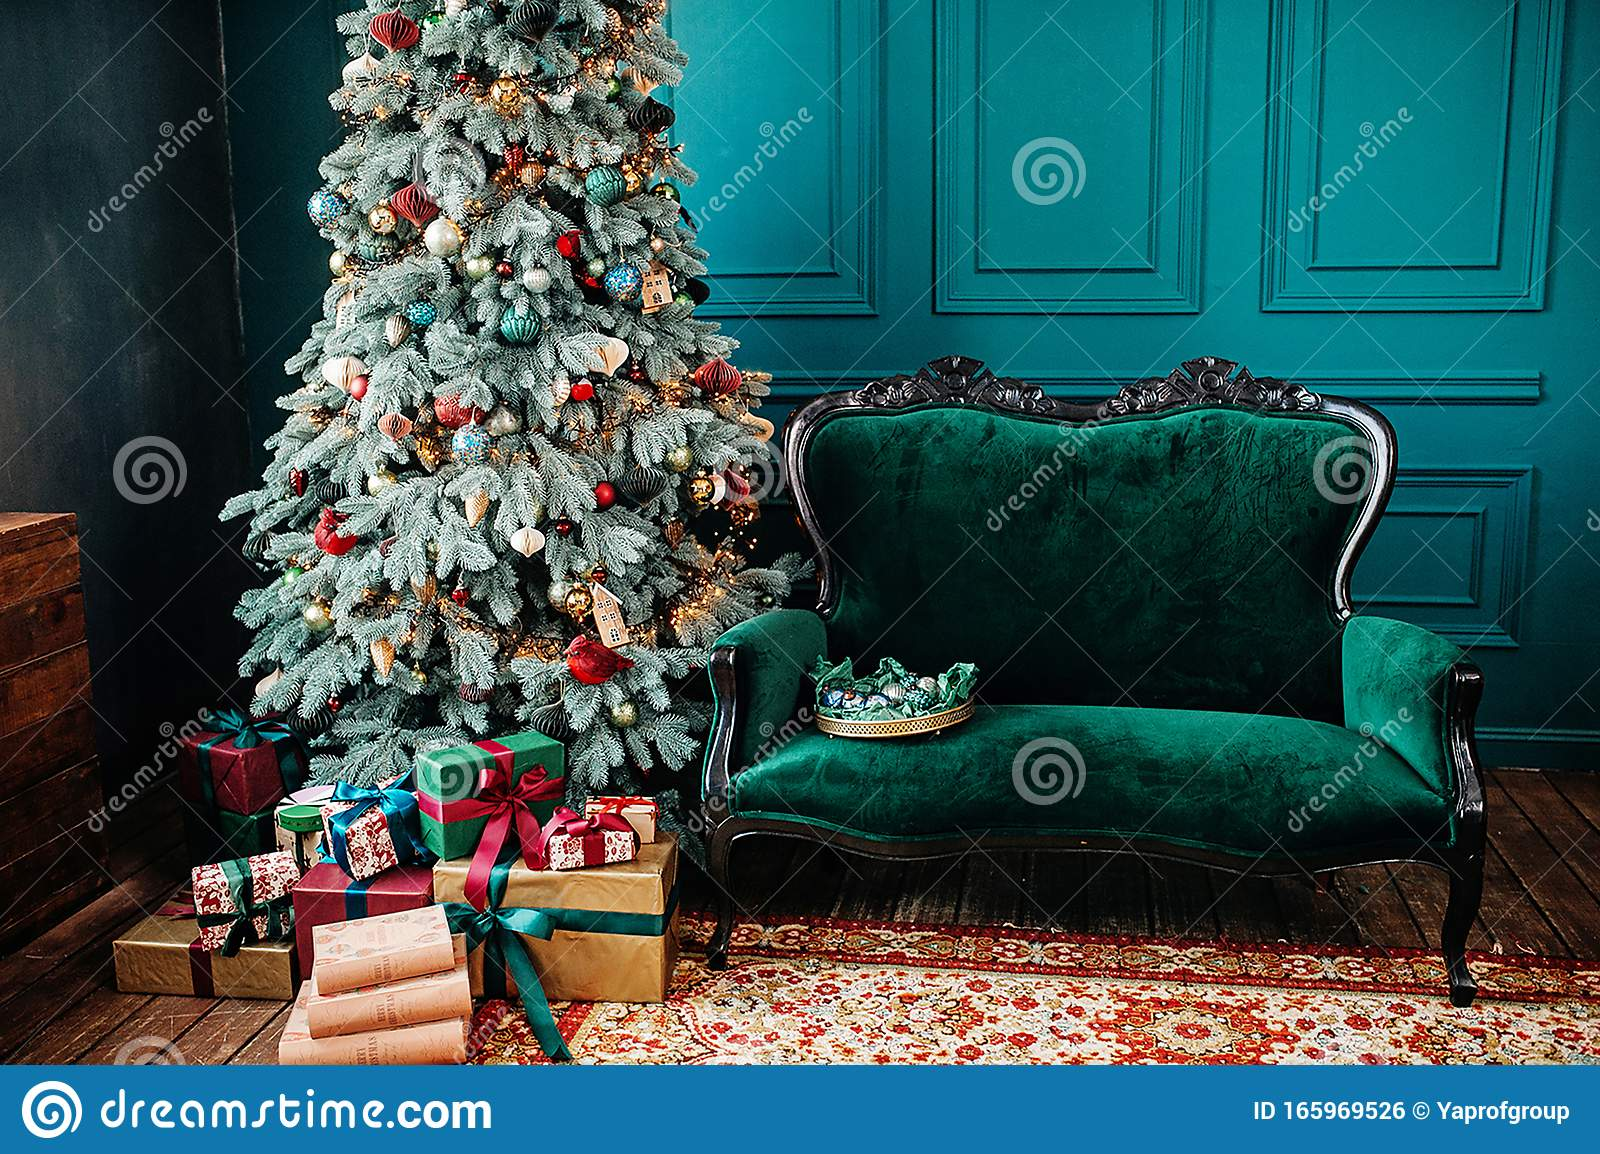 Classic Room Interior With Beautiful Christmas Tree And Gift Boxes Stock Photo Image Of Celebration Traditional 165969526